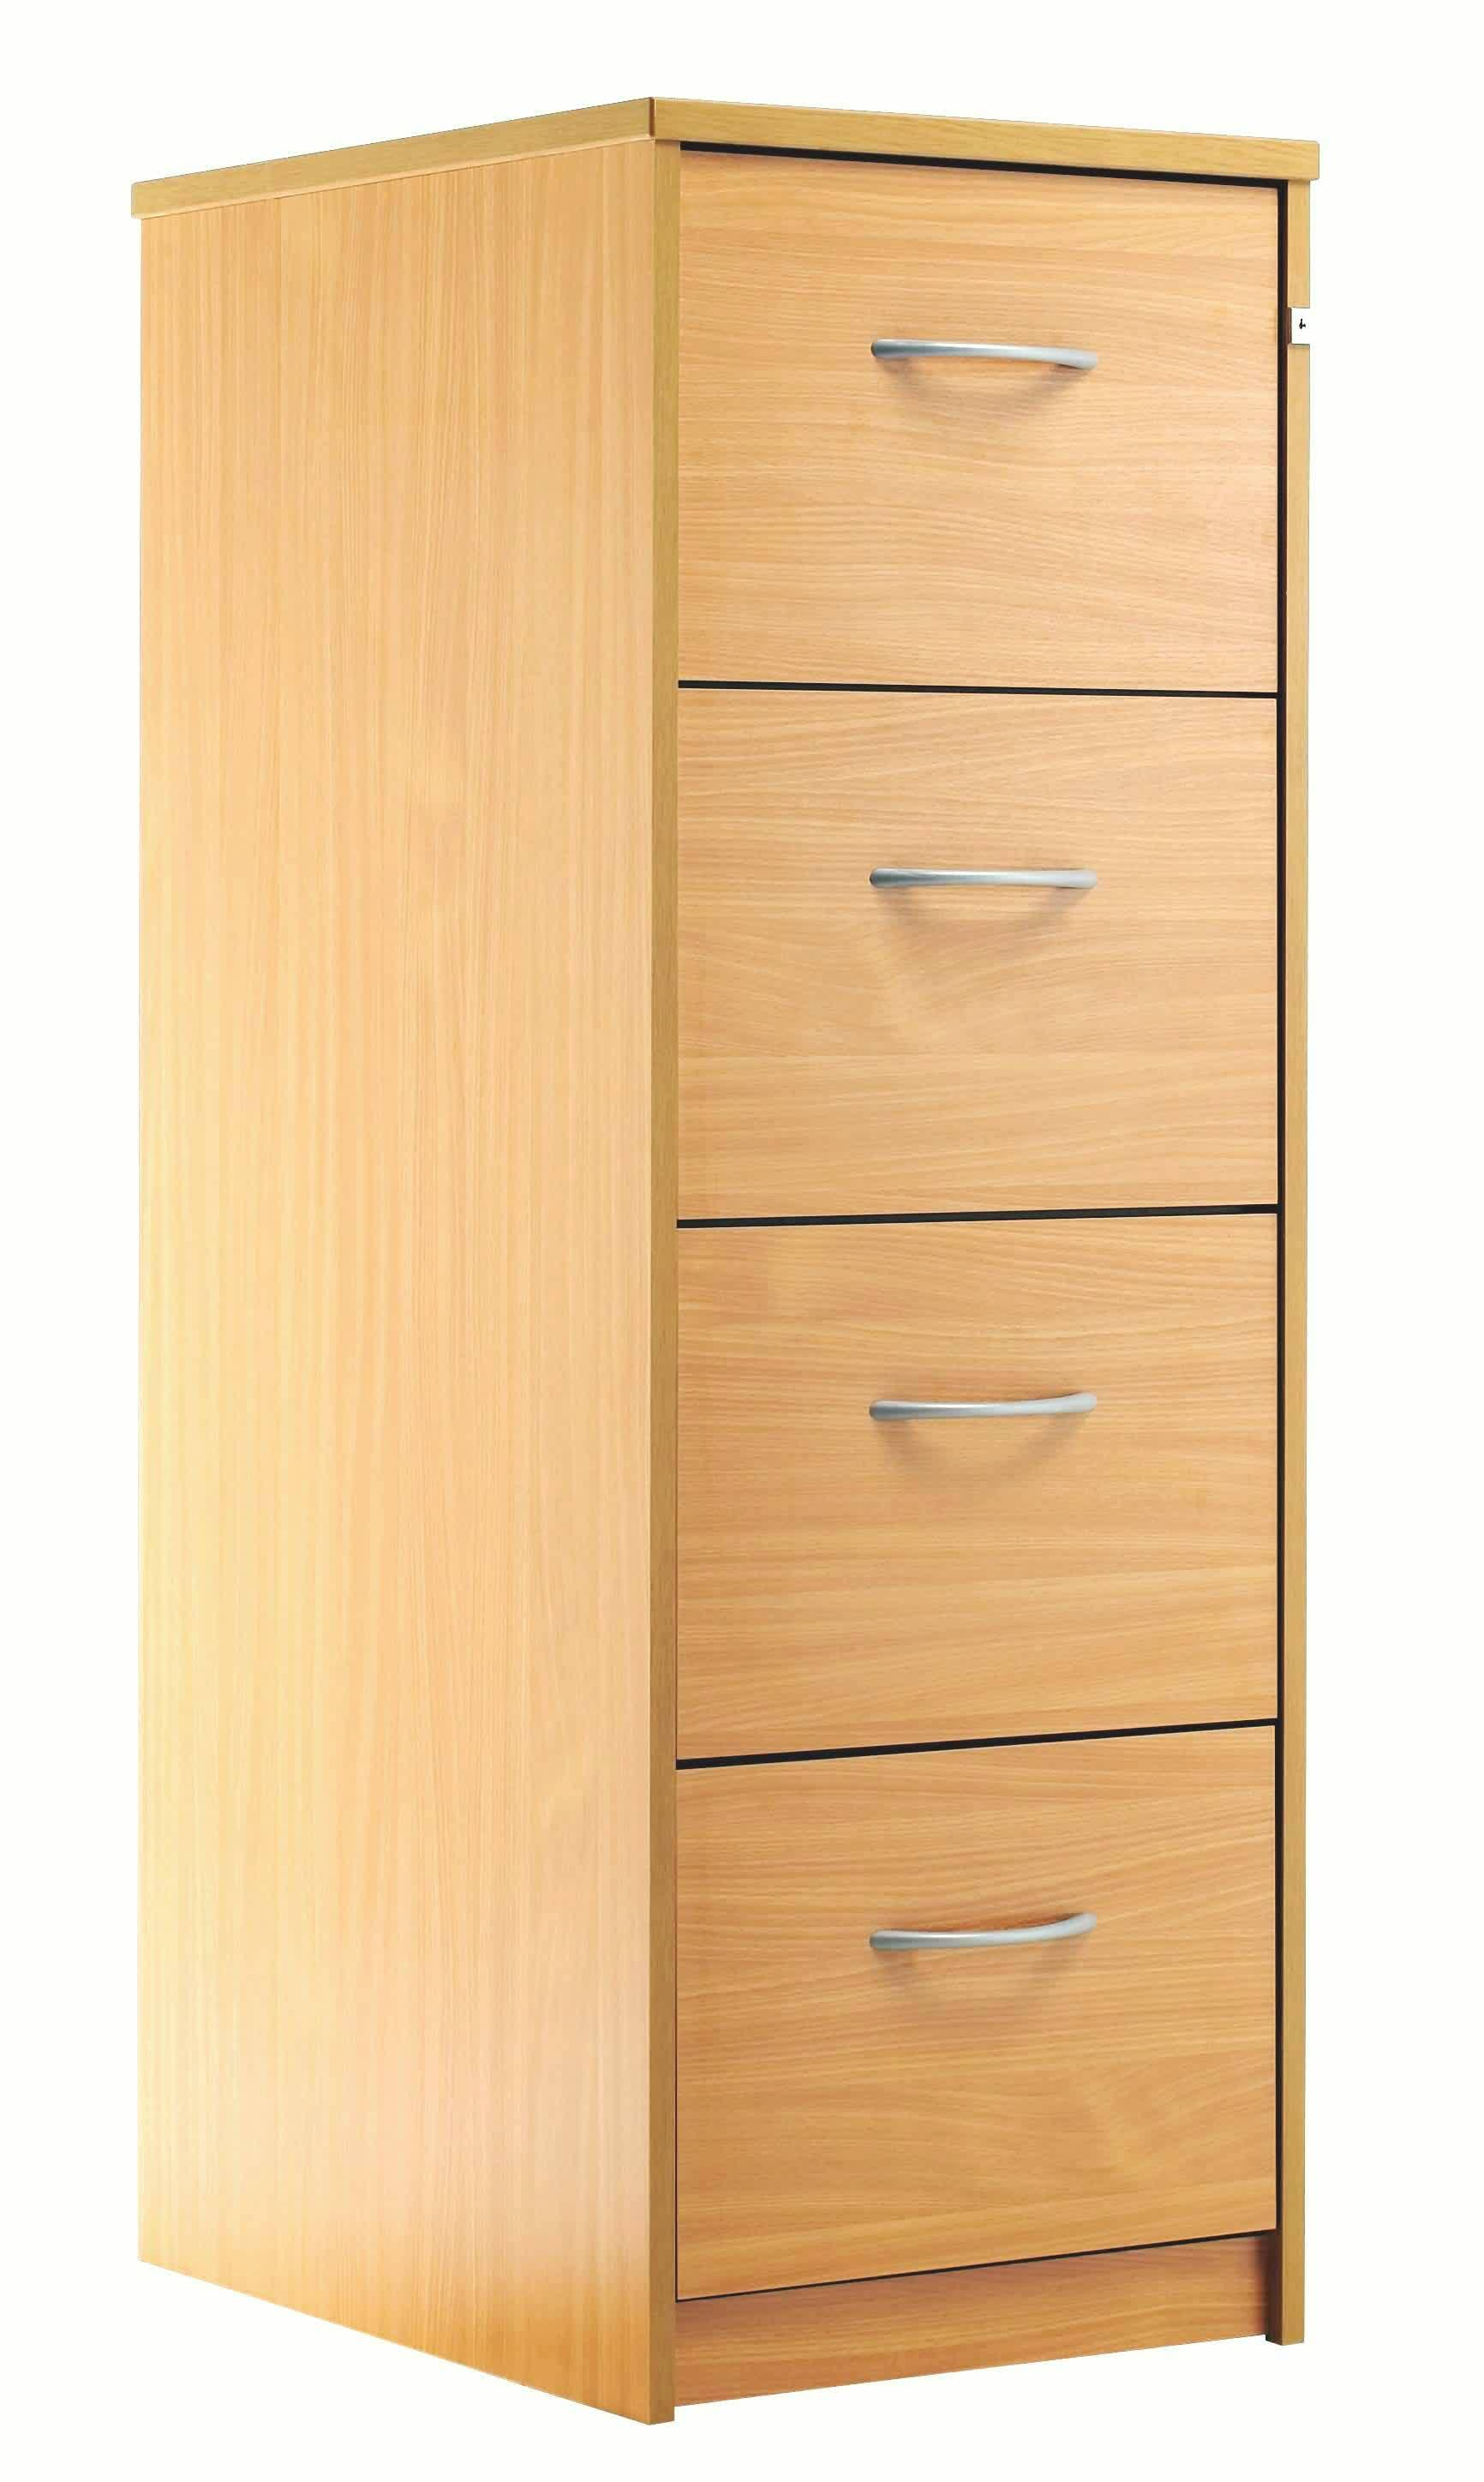 modern wood file cabinet ikea for home office ideas with four drawer and aluminum handles